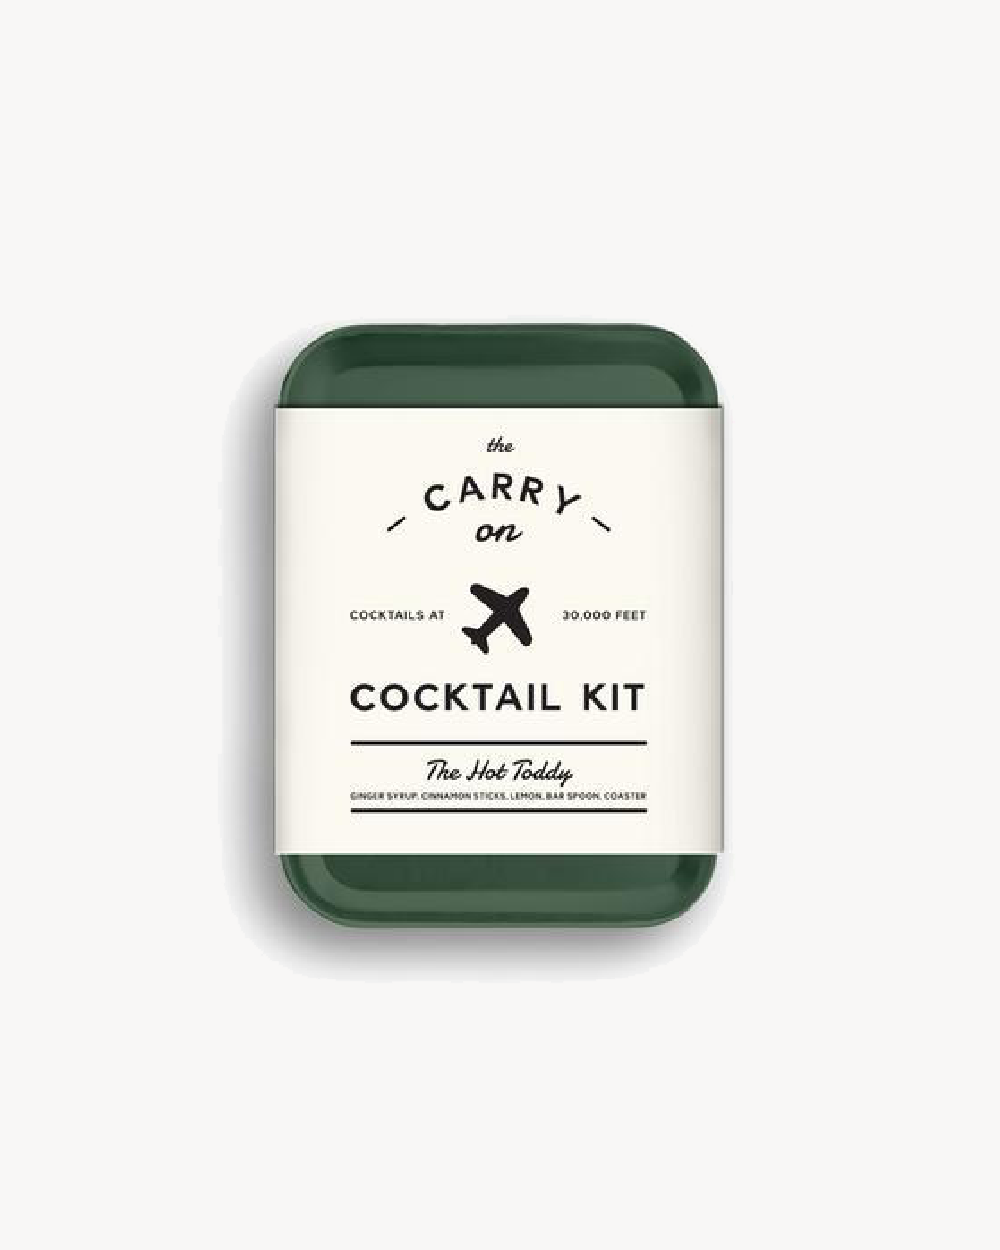 The Cocktail Kit - The Hot Toddy